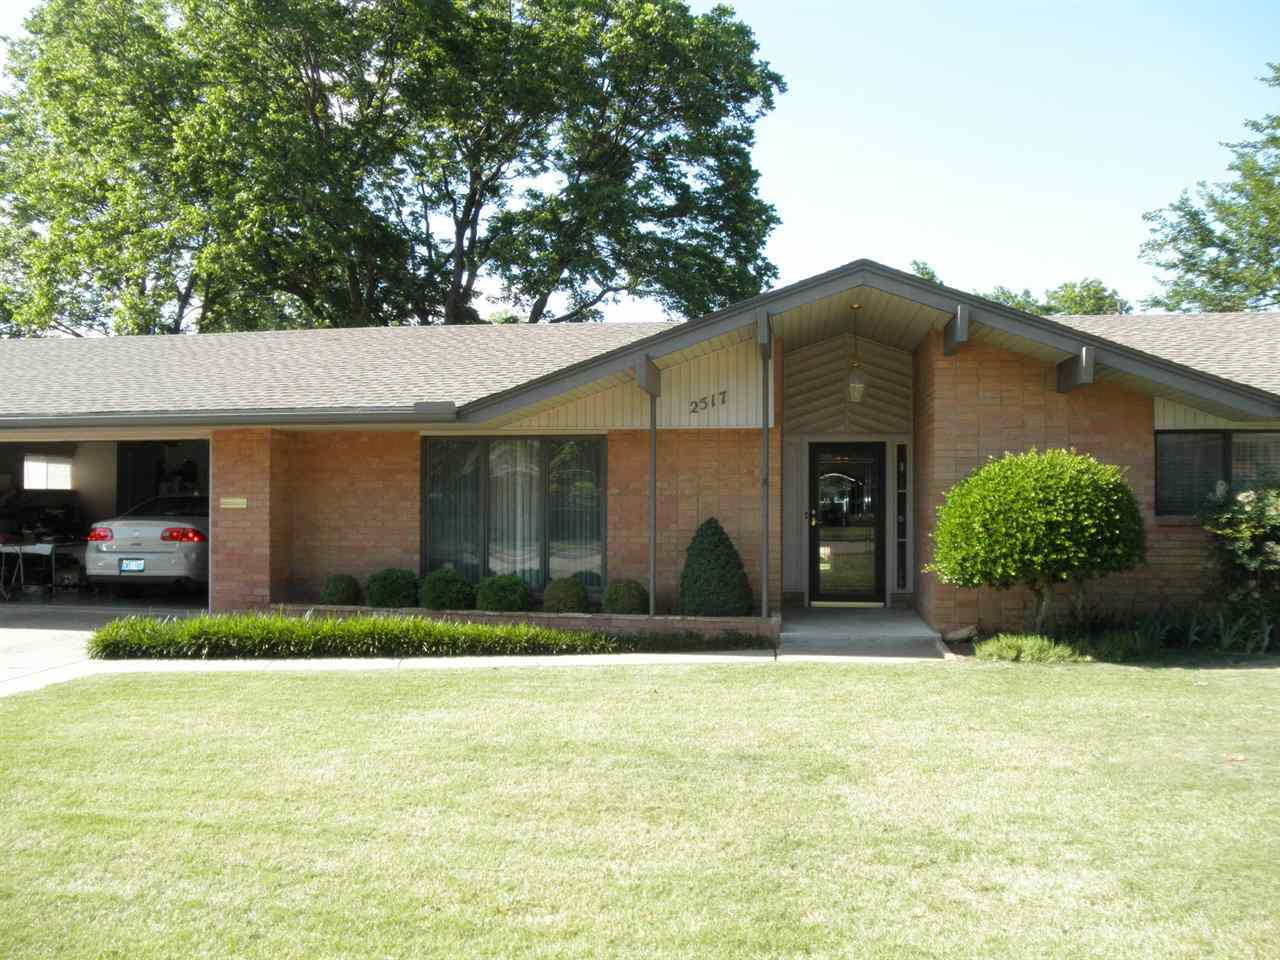 Sold Intraoffice W/MLS | 2517 Canterbury  Ponca City, OK 74604 0